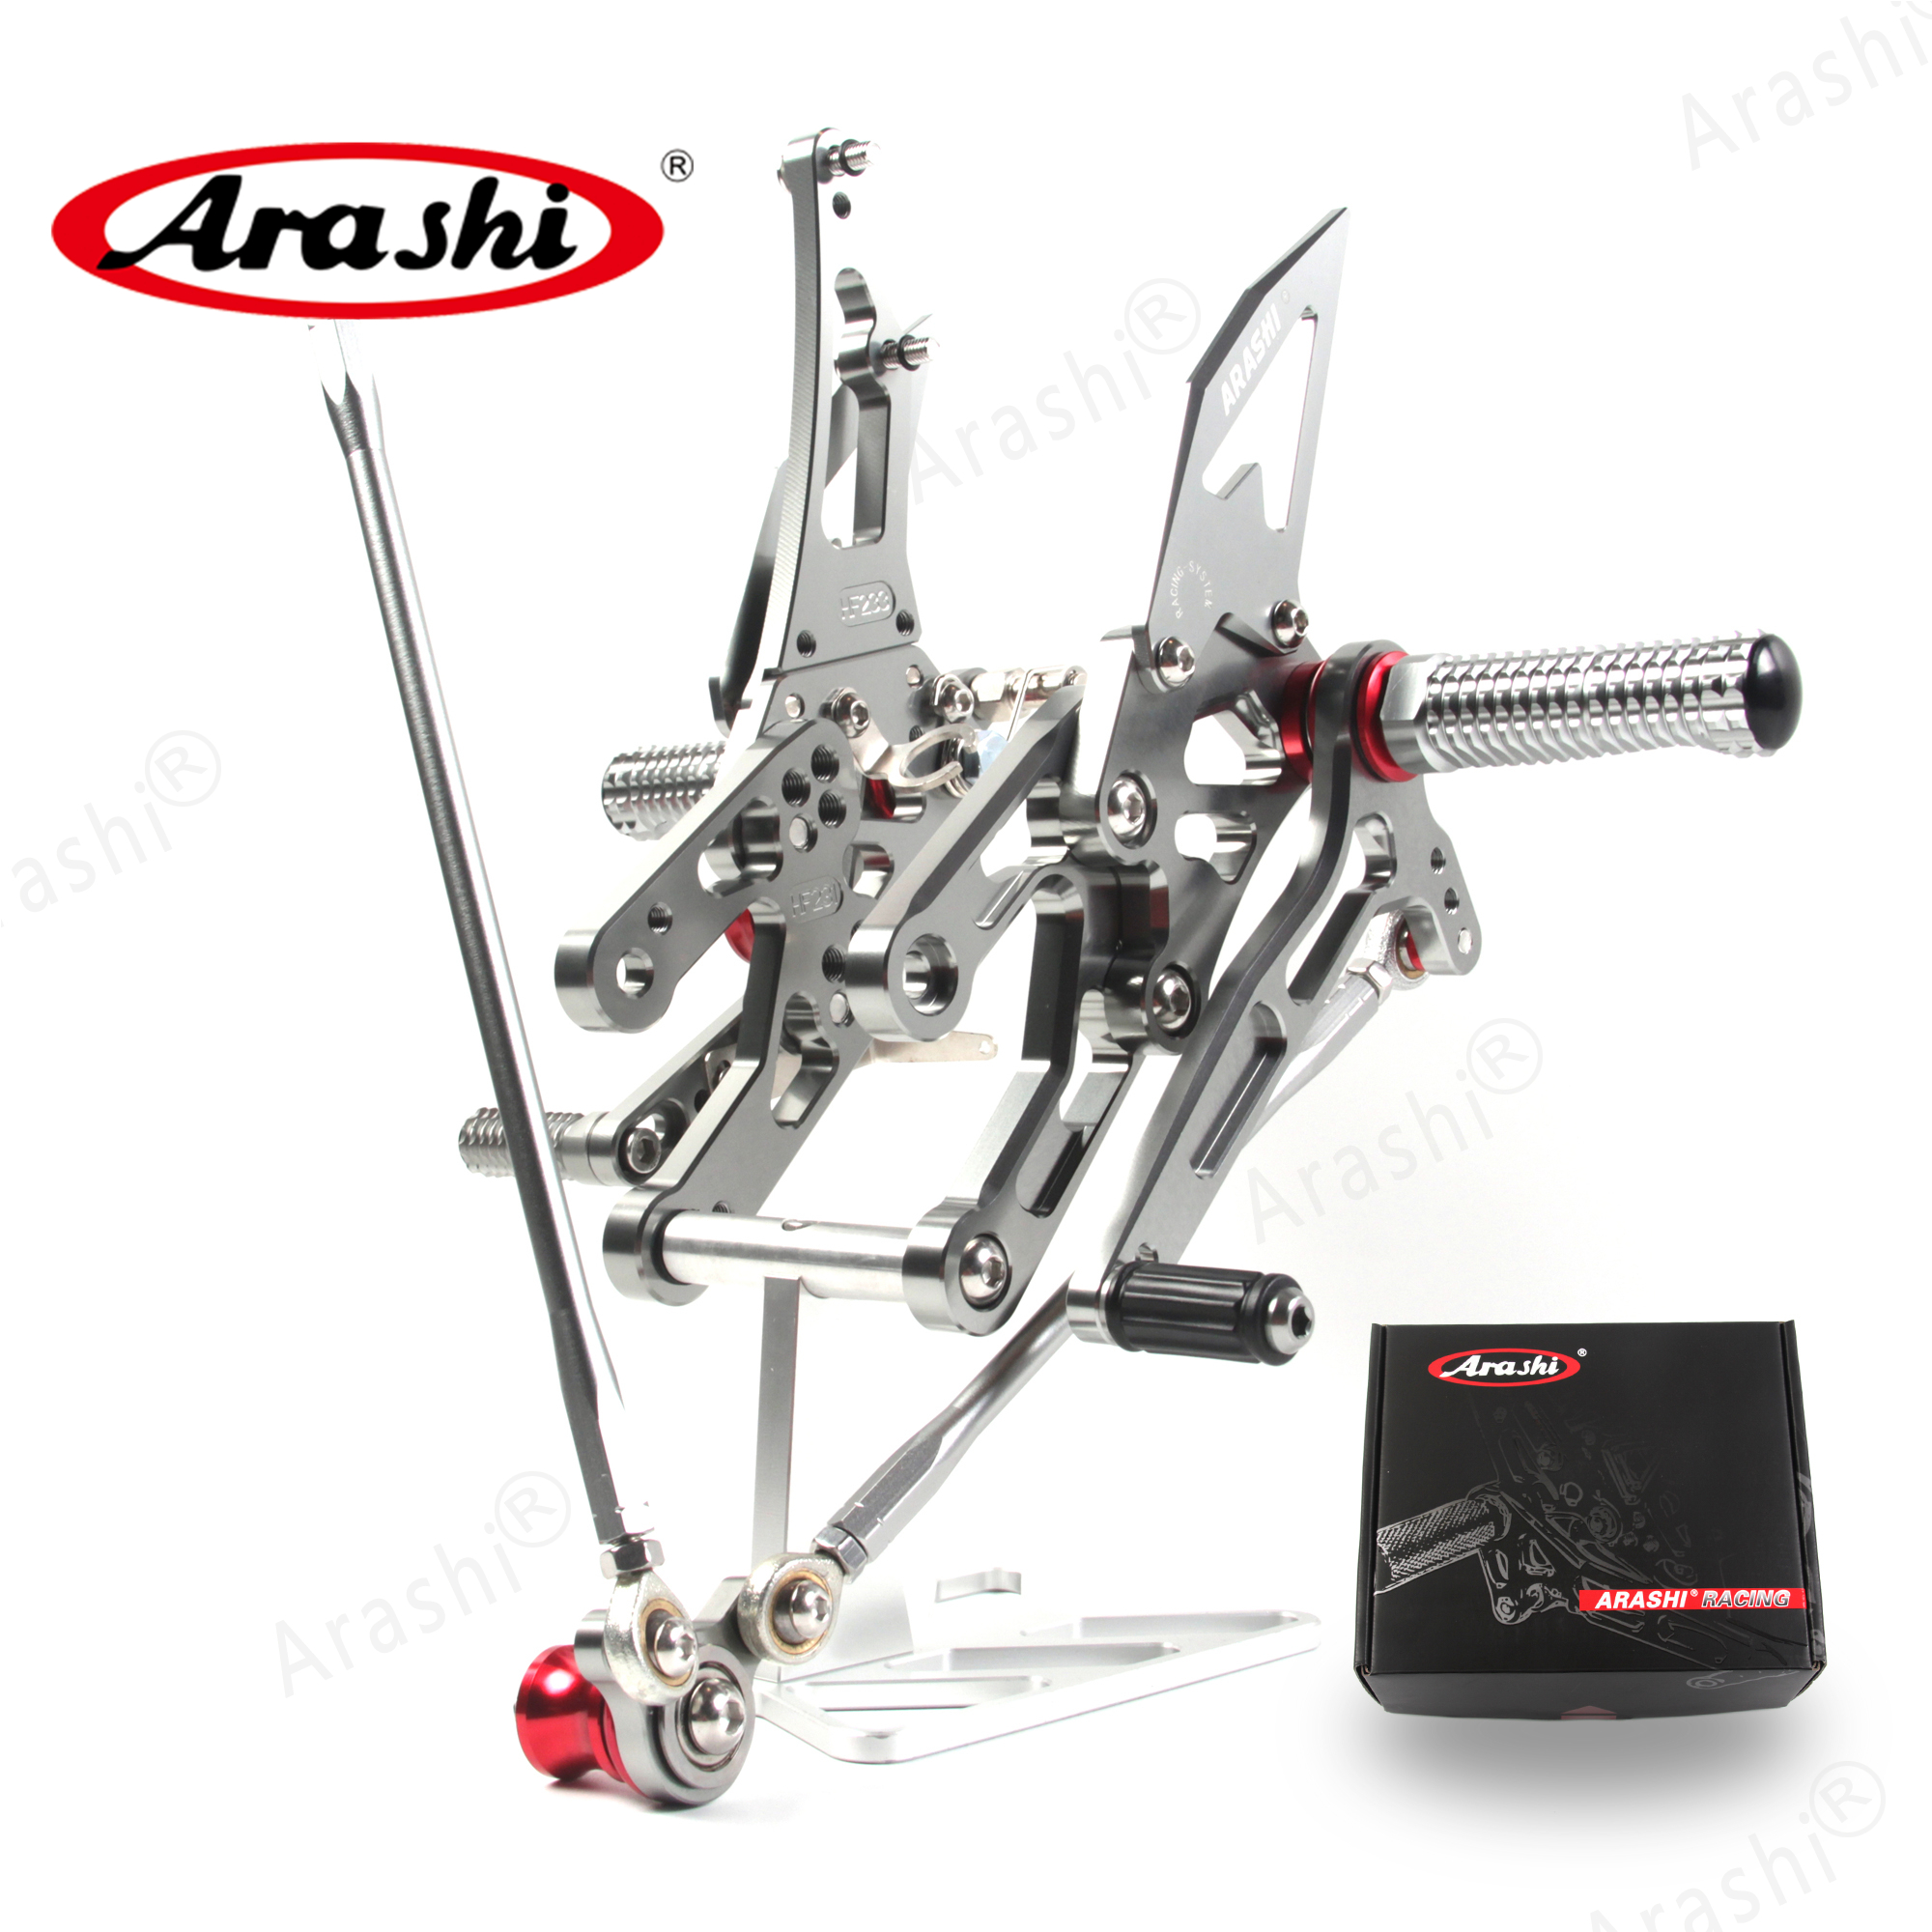 ARASHI Rider Rearset For HONDA CBR1000RR 2004-2007 CBR 1000 2004 2005 2006 2007 CNC Adjustable Footrest Footpegs Foot Peg